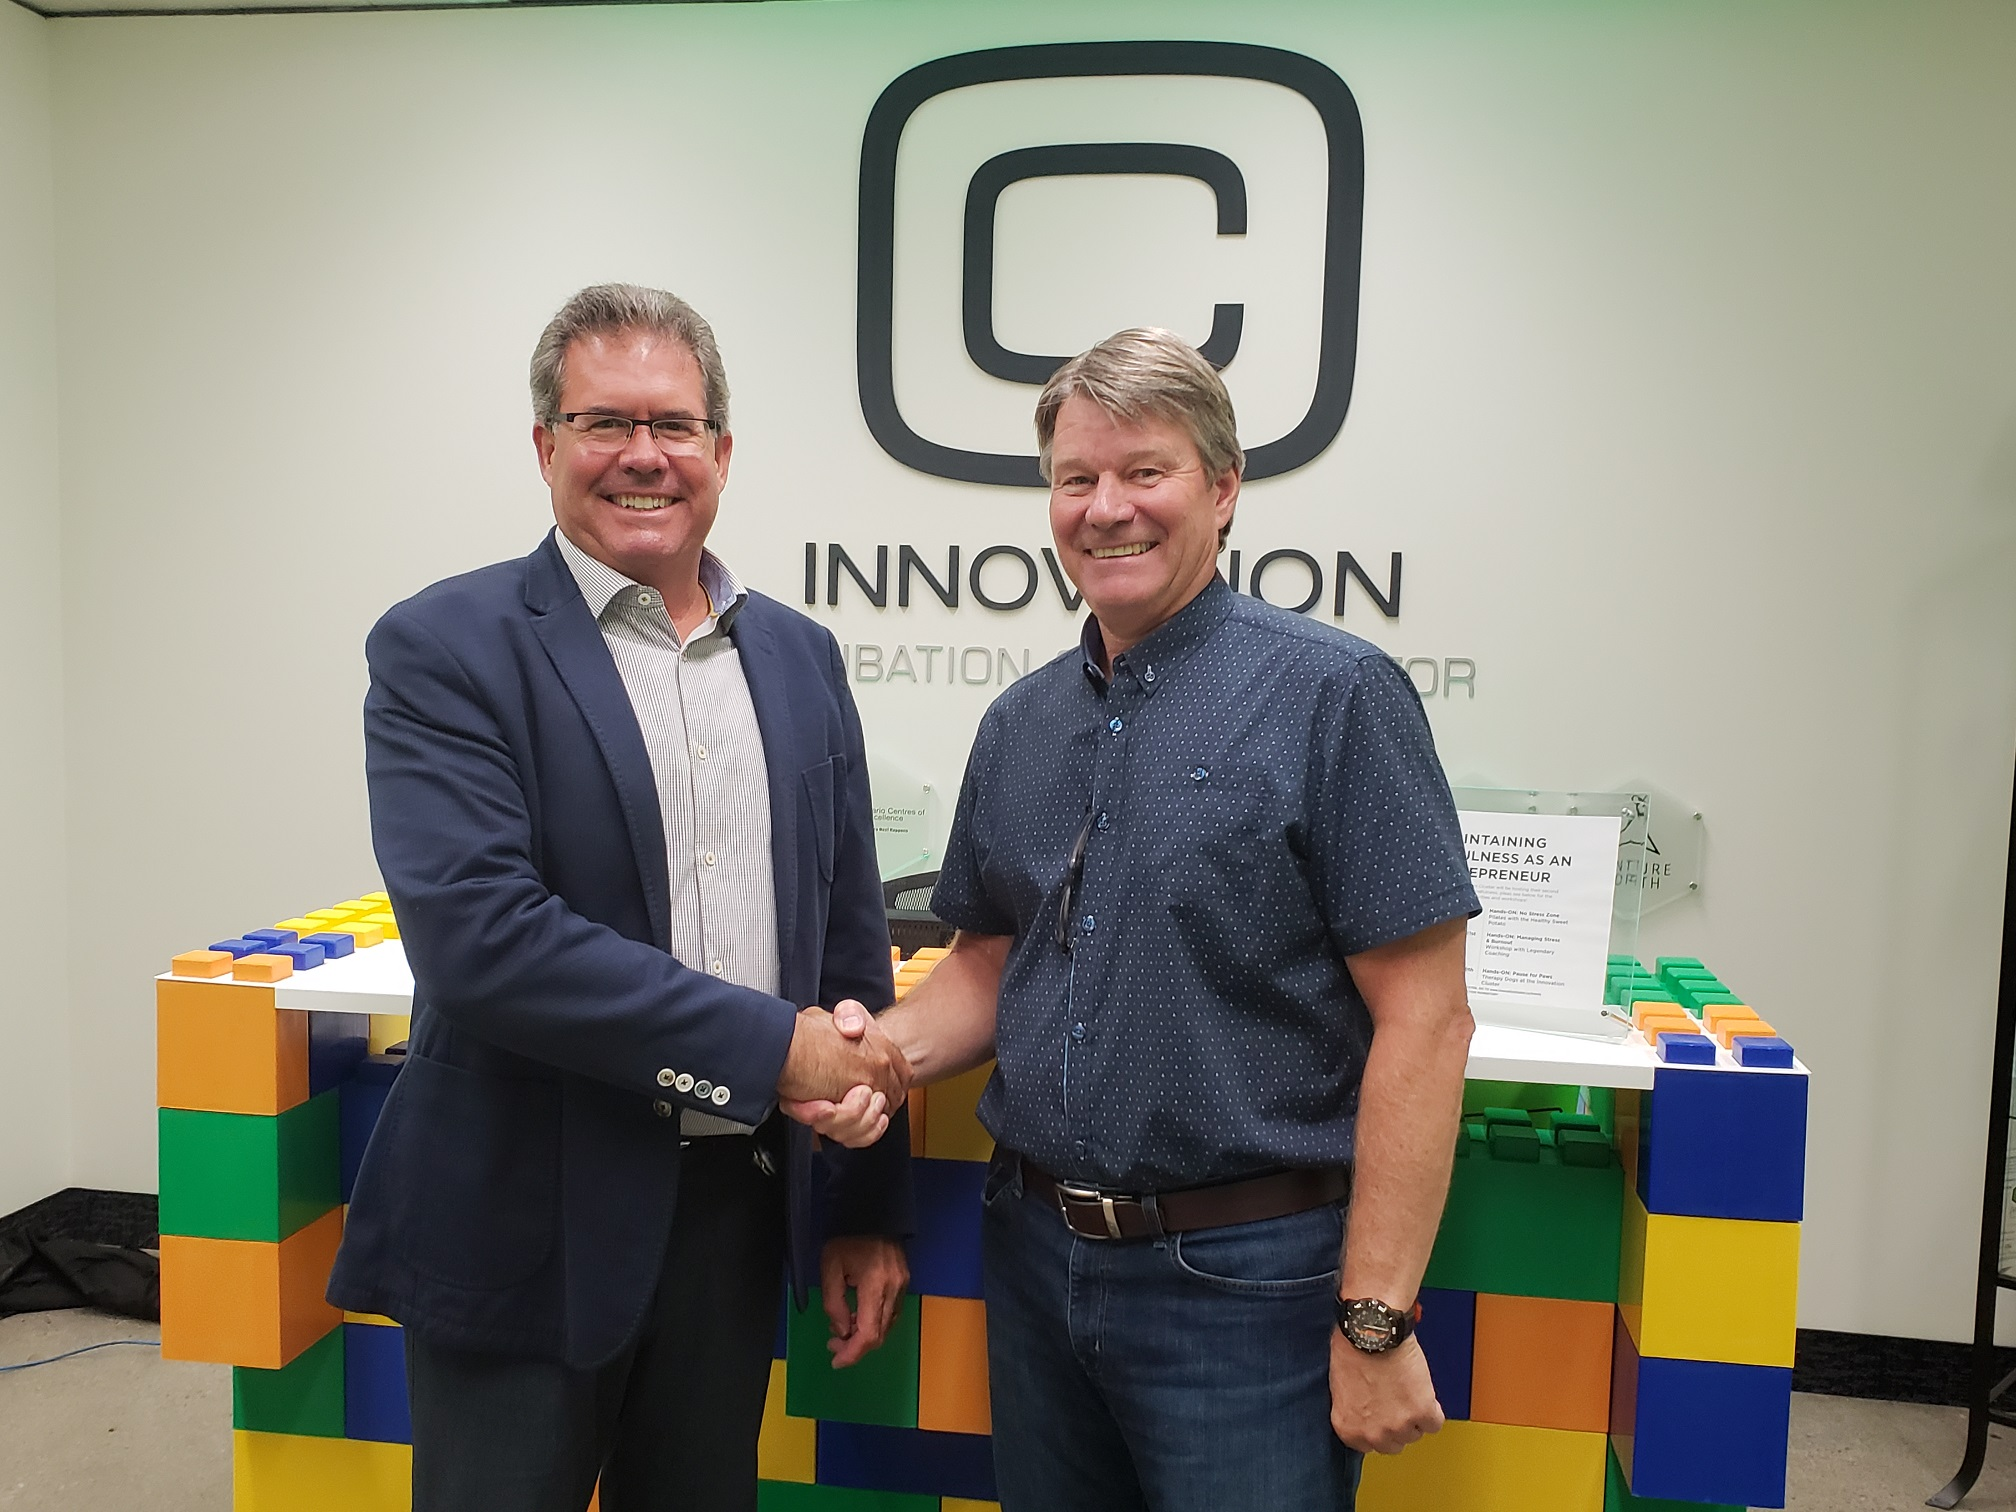 Innovation Cluster Signs MOU With Peterborough Utilities Group to Expand Peterborough's Water Market